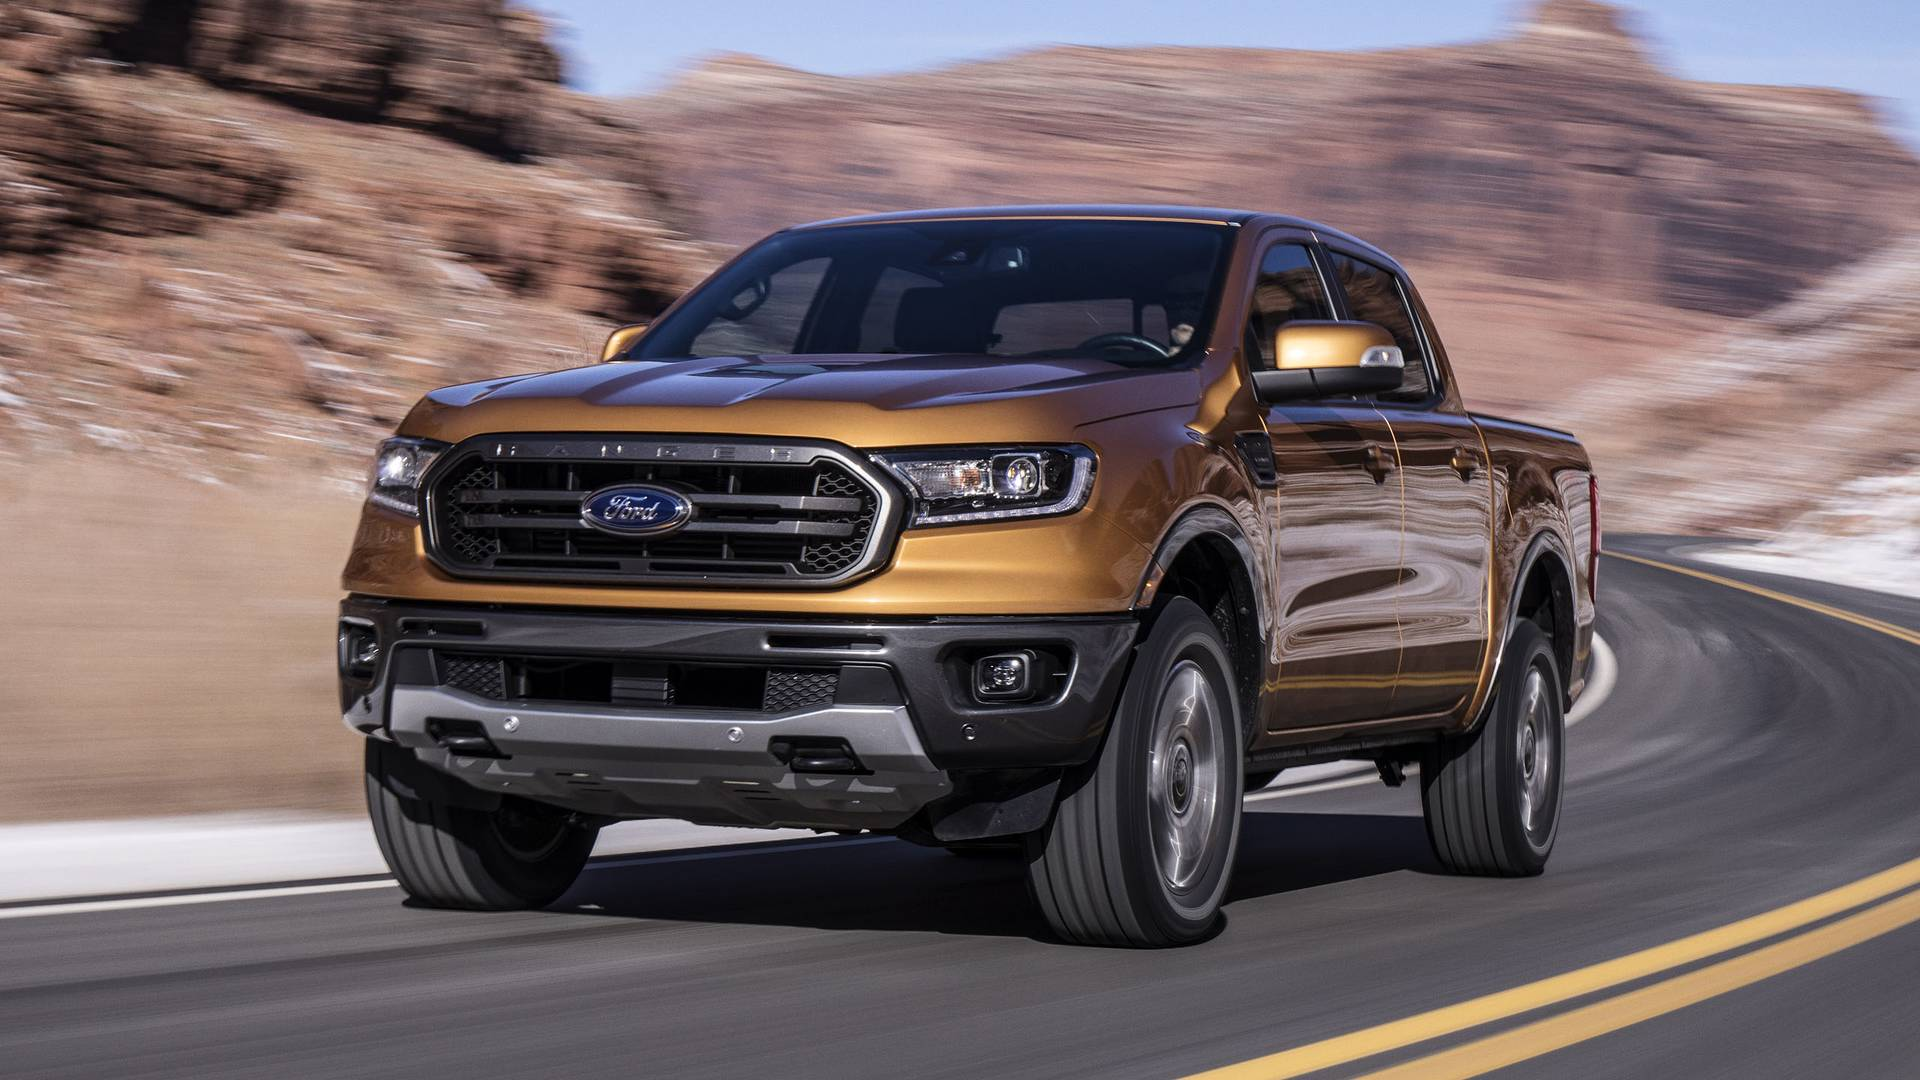 Ranger Ford 2018 >> How The Ford Ranger Compares To Its Midsize Truck Rivals